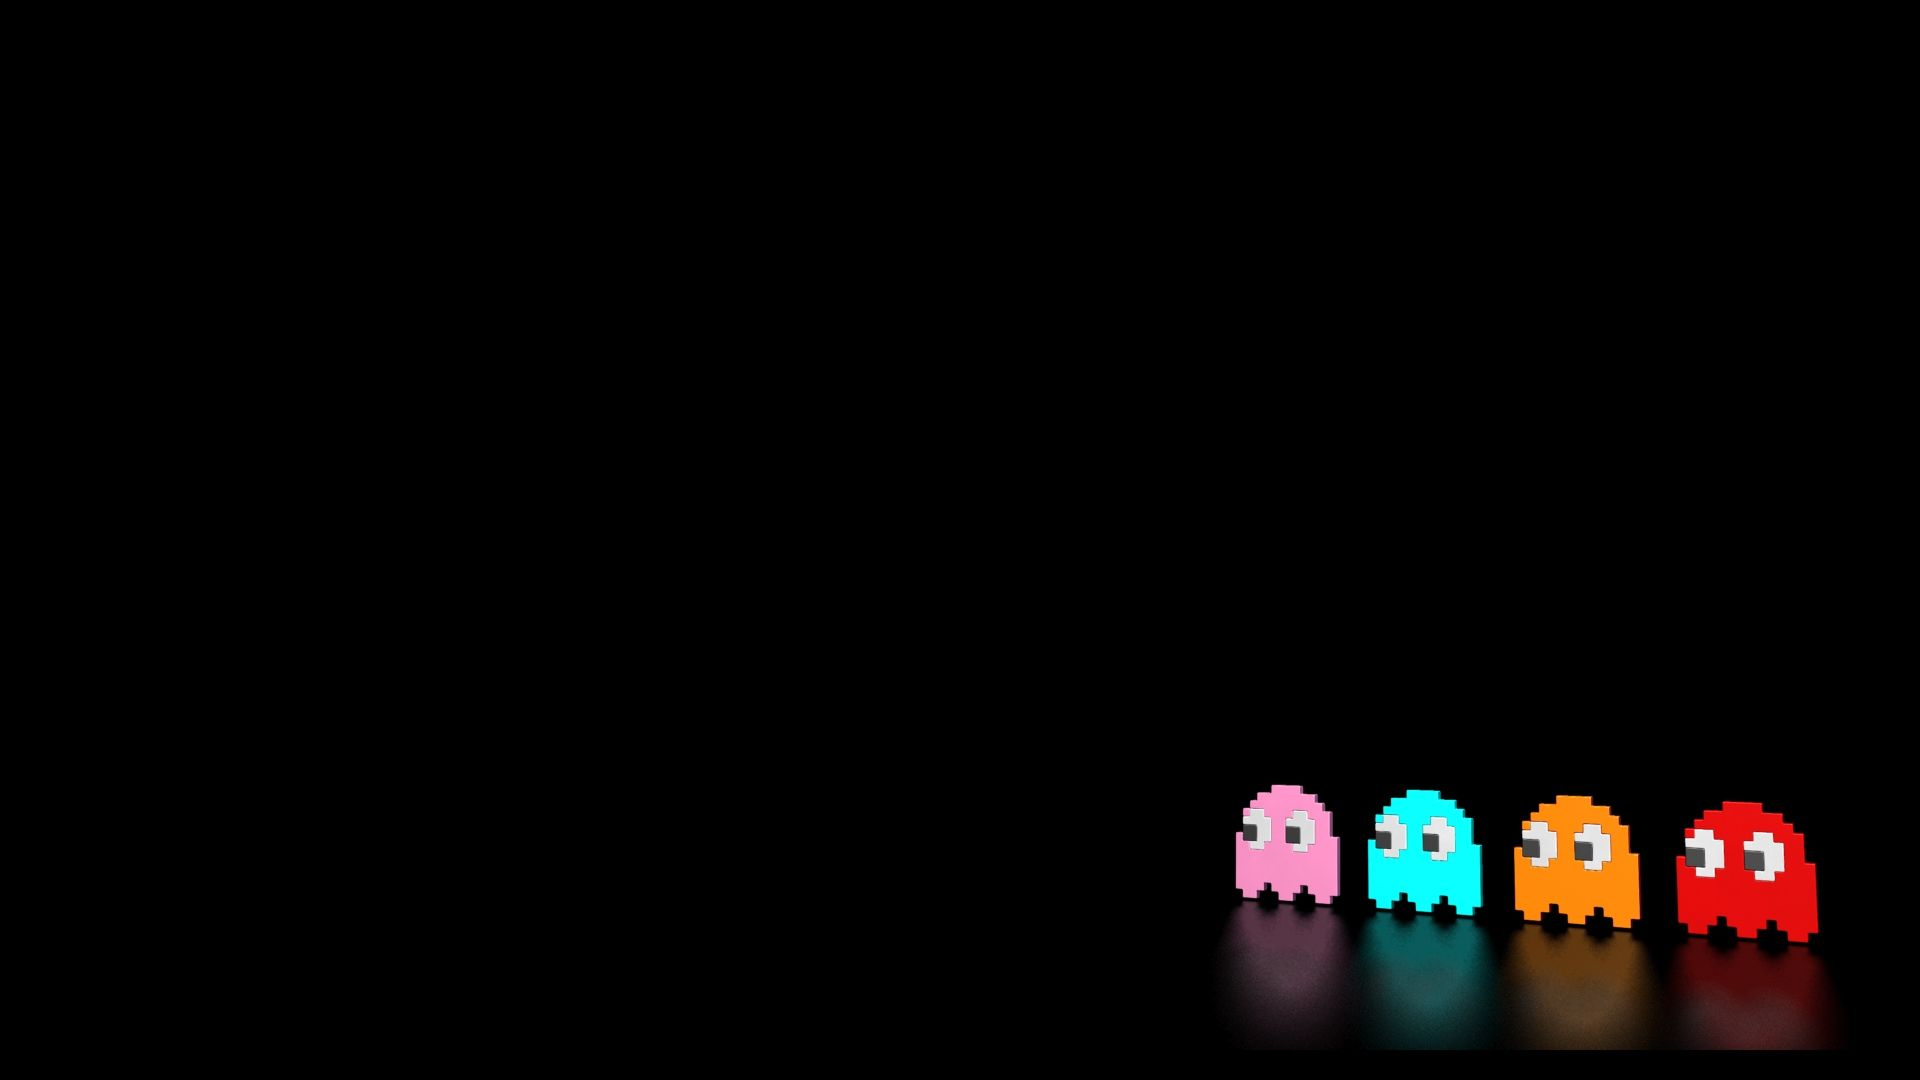 1920x1080 Download the Reflective Pacman Ghosts Wallpaper, Reflective Pacman ...